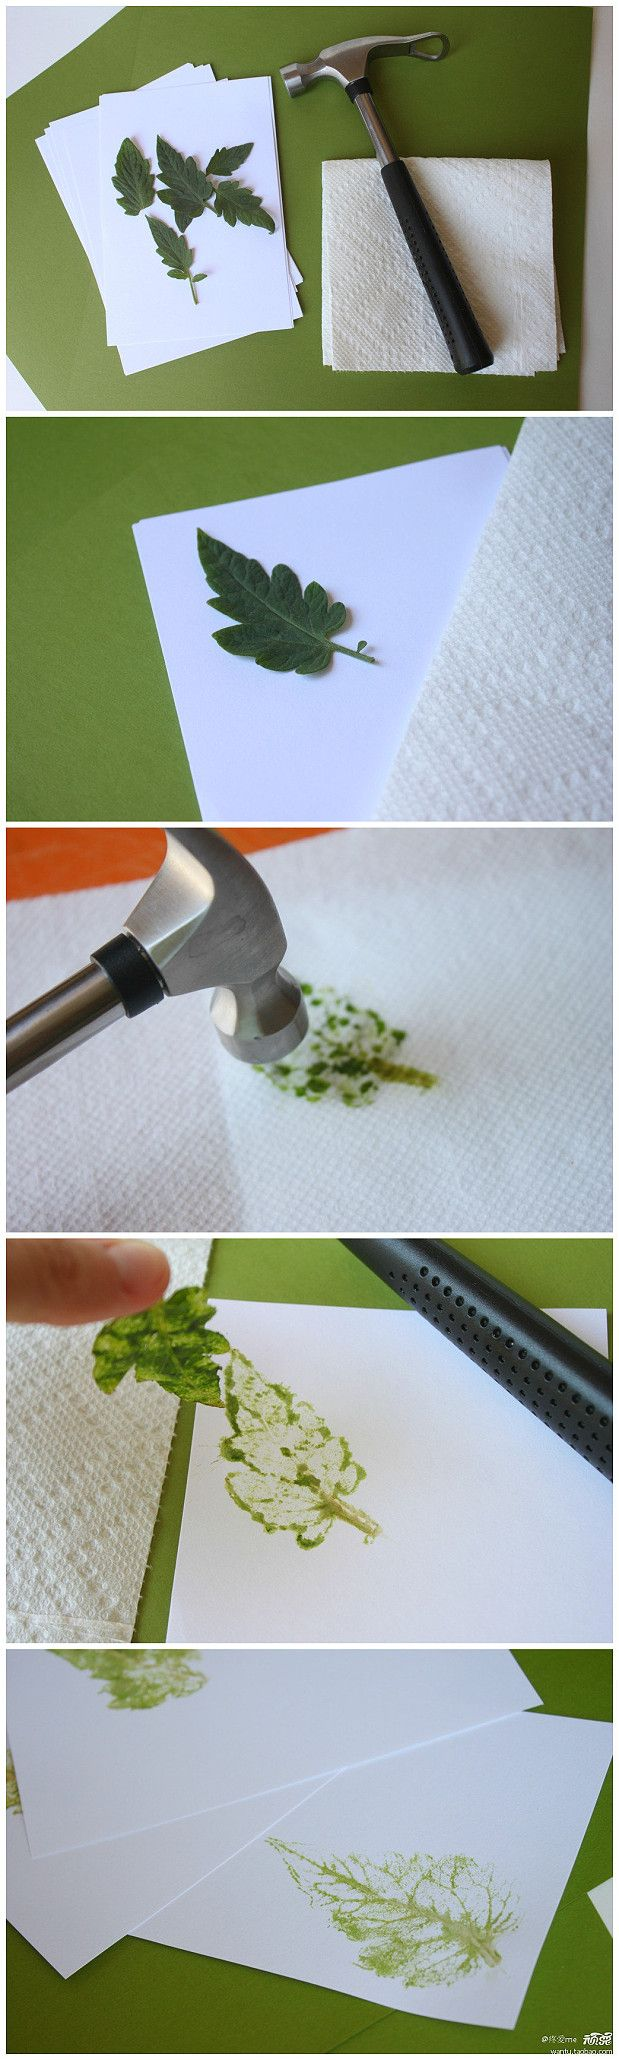 Without pigment with a hammer making plant impressions. Neat!! #weddinginvitations